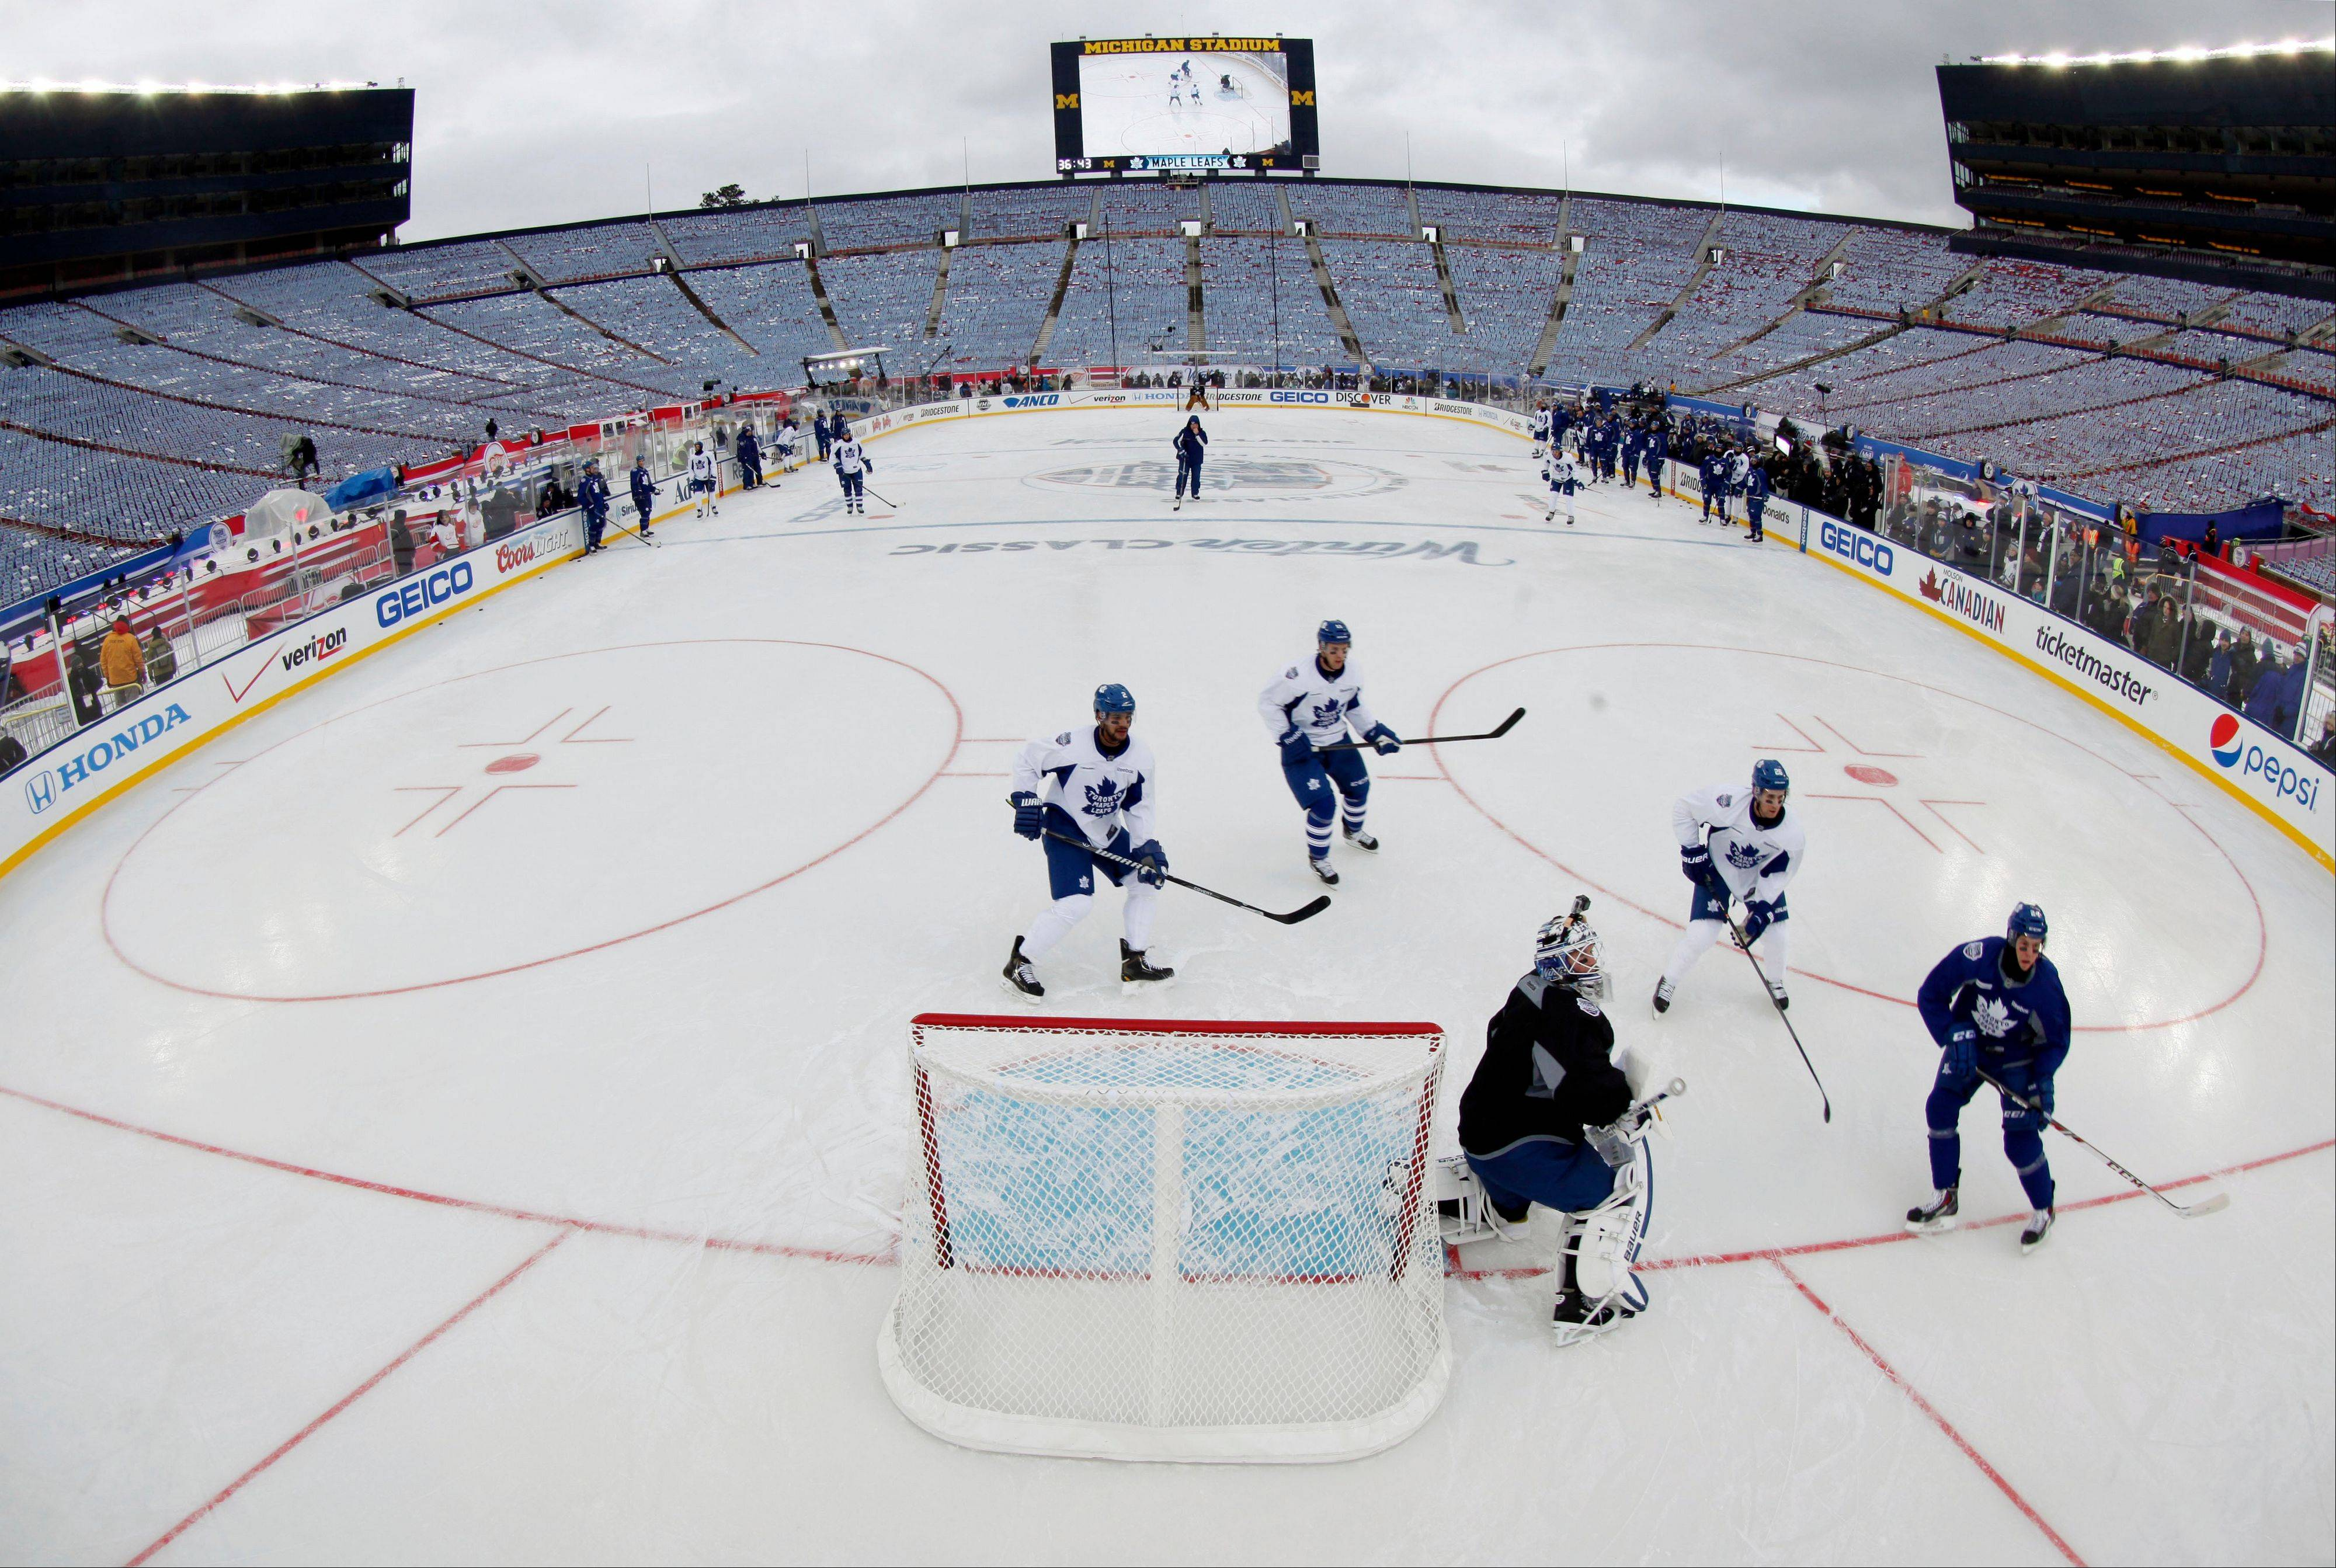 Toronto Maple Leafs players practice Tuesday on the outdoor rink for Wednesday's Winter Classic against the Detroit Red Wings at Michigan Stadium in Ann Arbor.